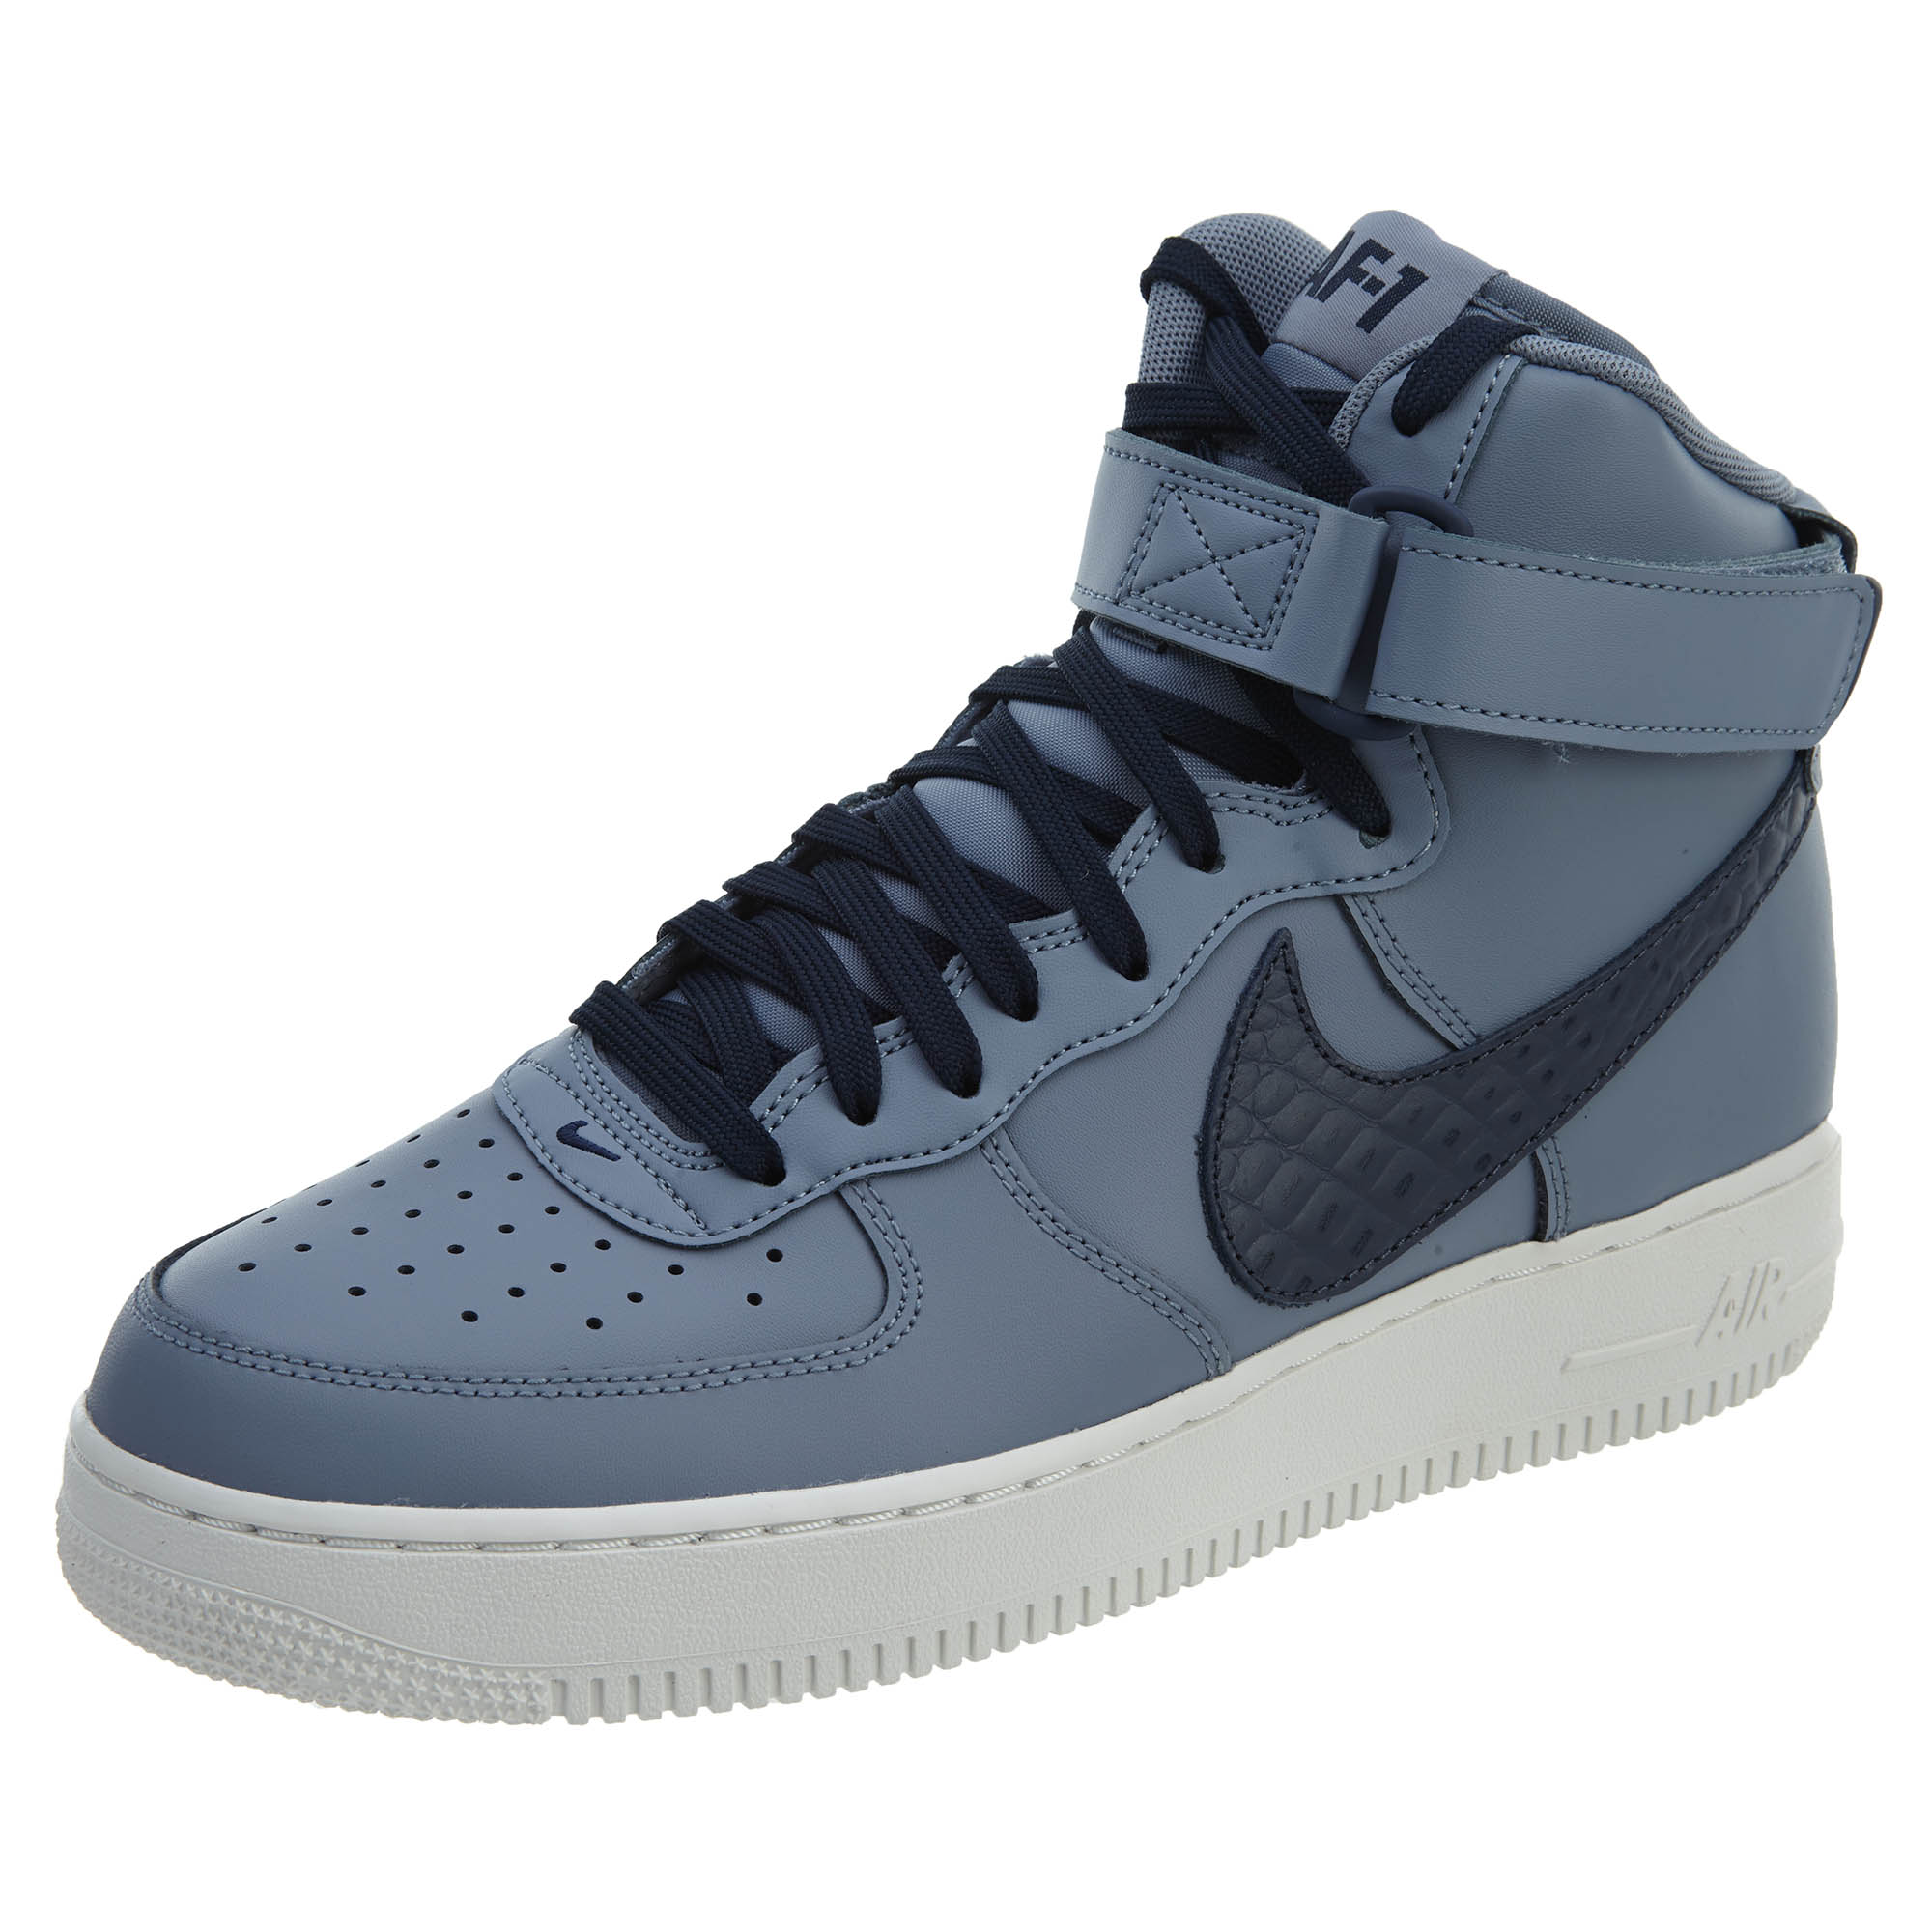 quality design d5352 6bd01 Details about Nike Mens Air Force 1 High 07 LV8 Running Shoes 806403-404